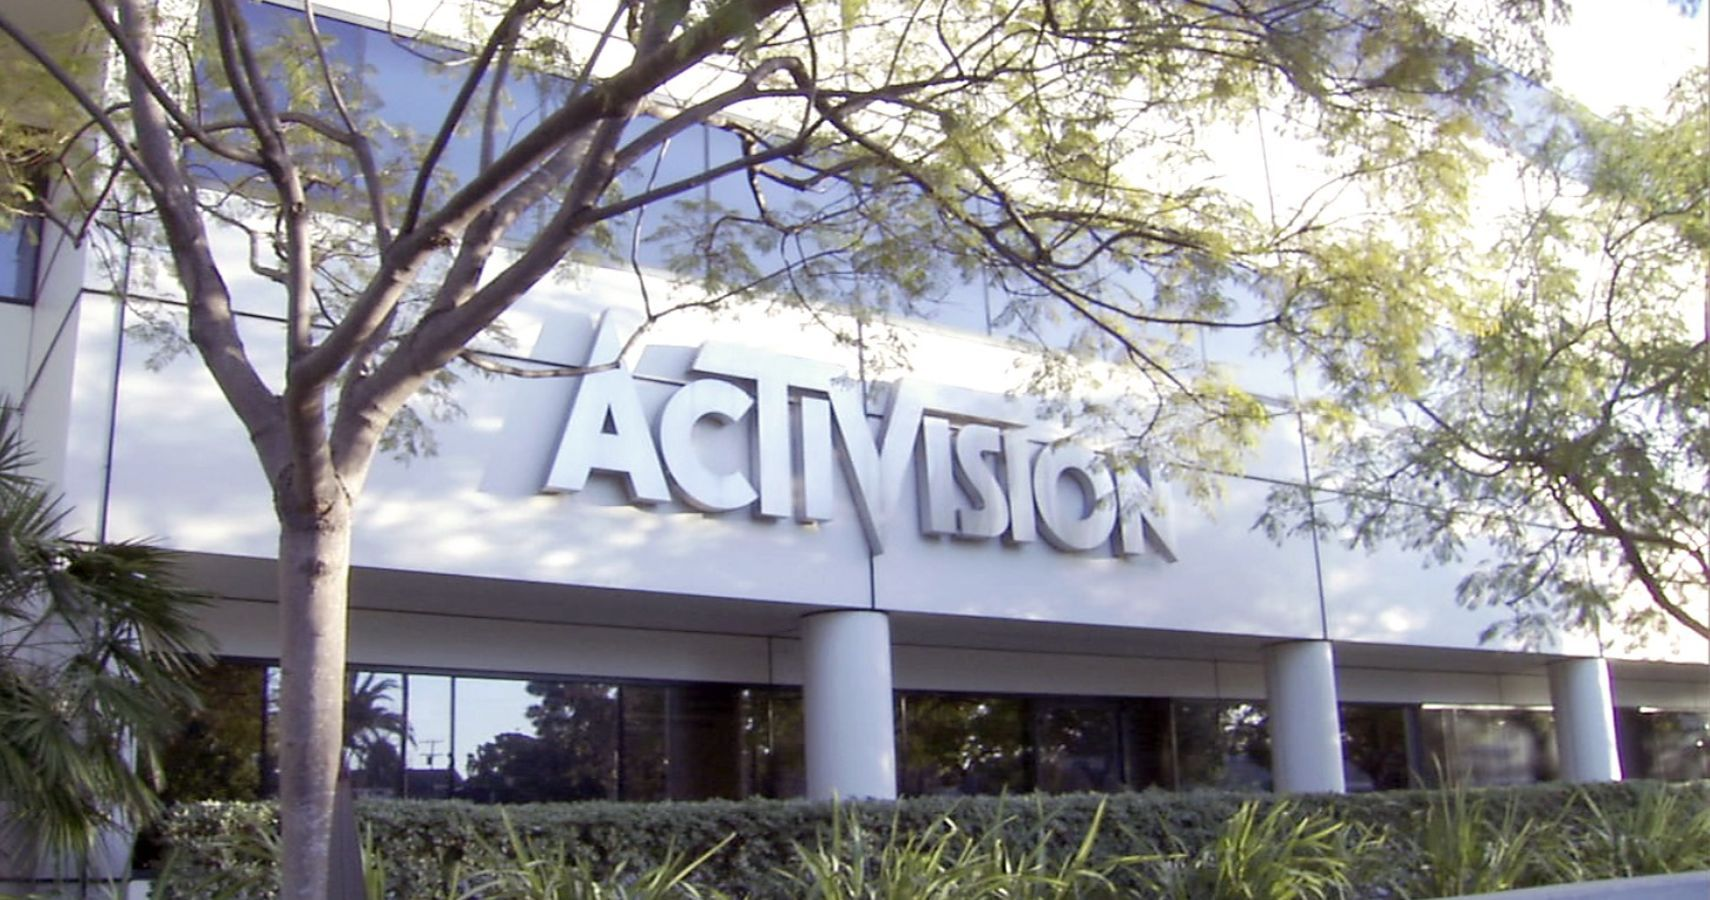 Activision Blizzard Staff Share Accounts Of Sexual Abuse